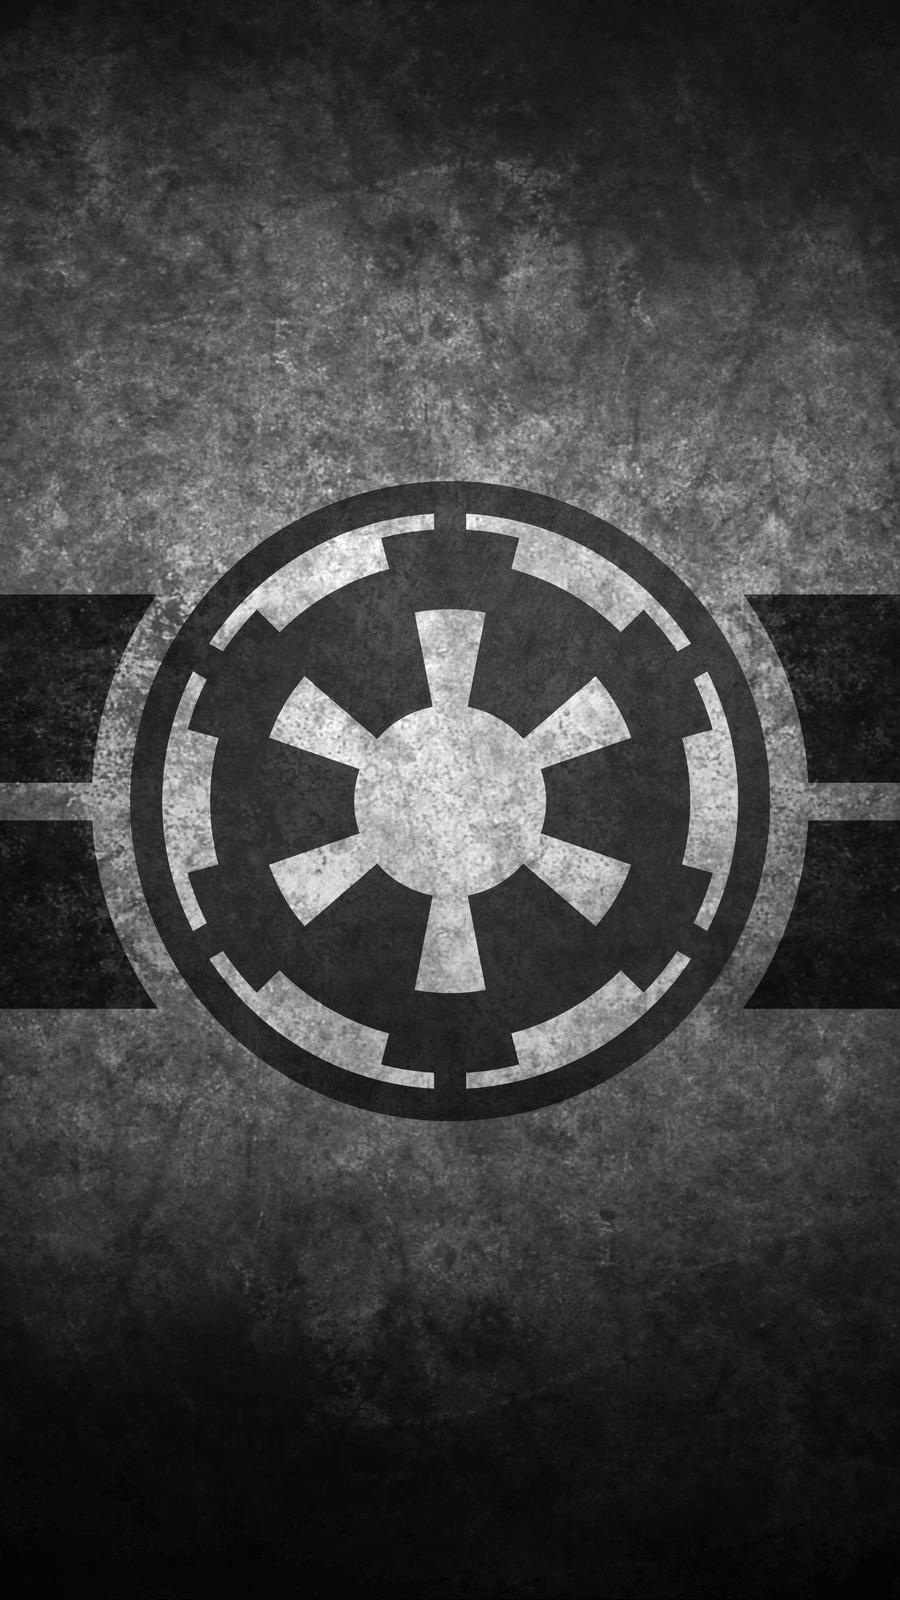 imperial cog/insignia/symbol cellphone wallpaper by swmand4 on